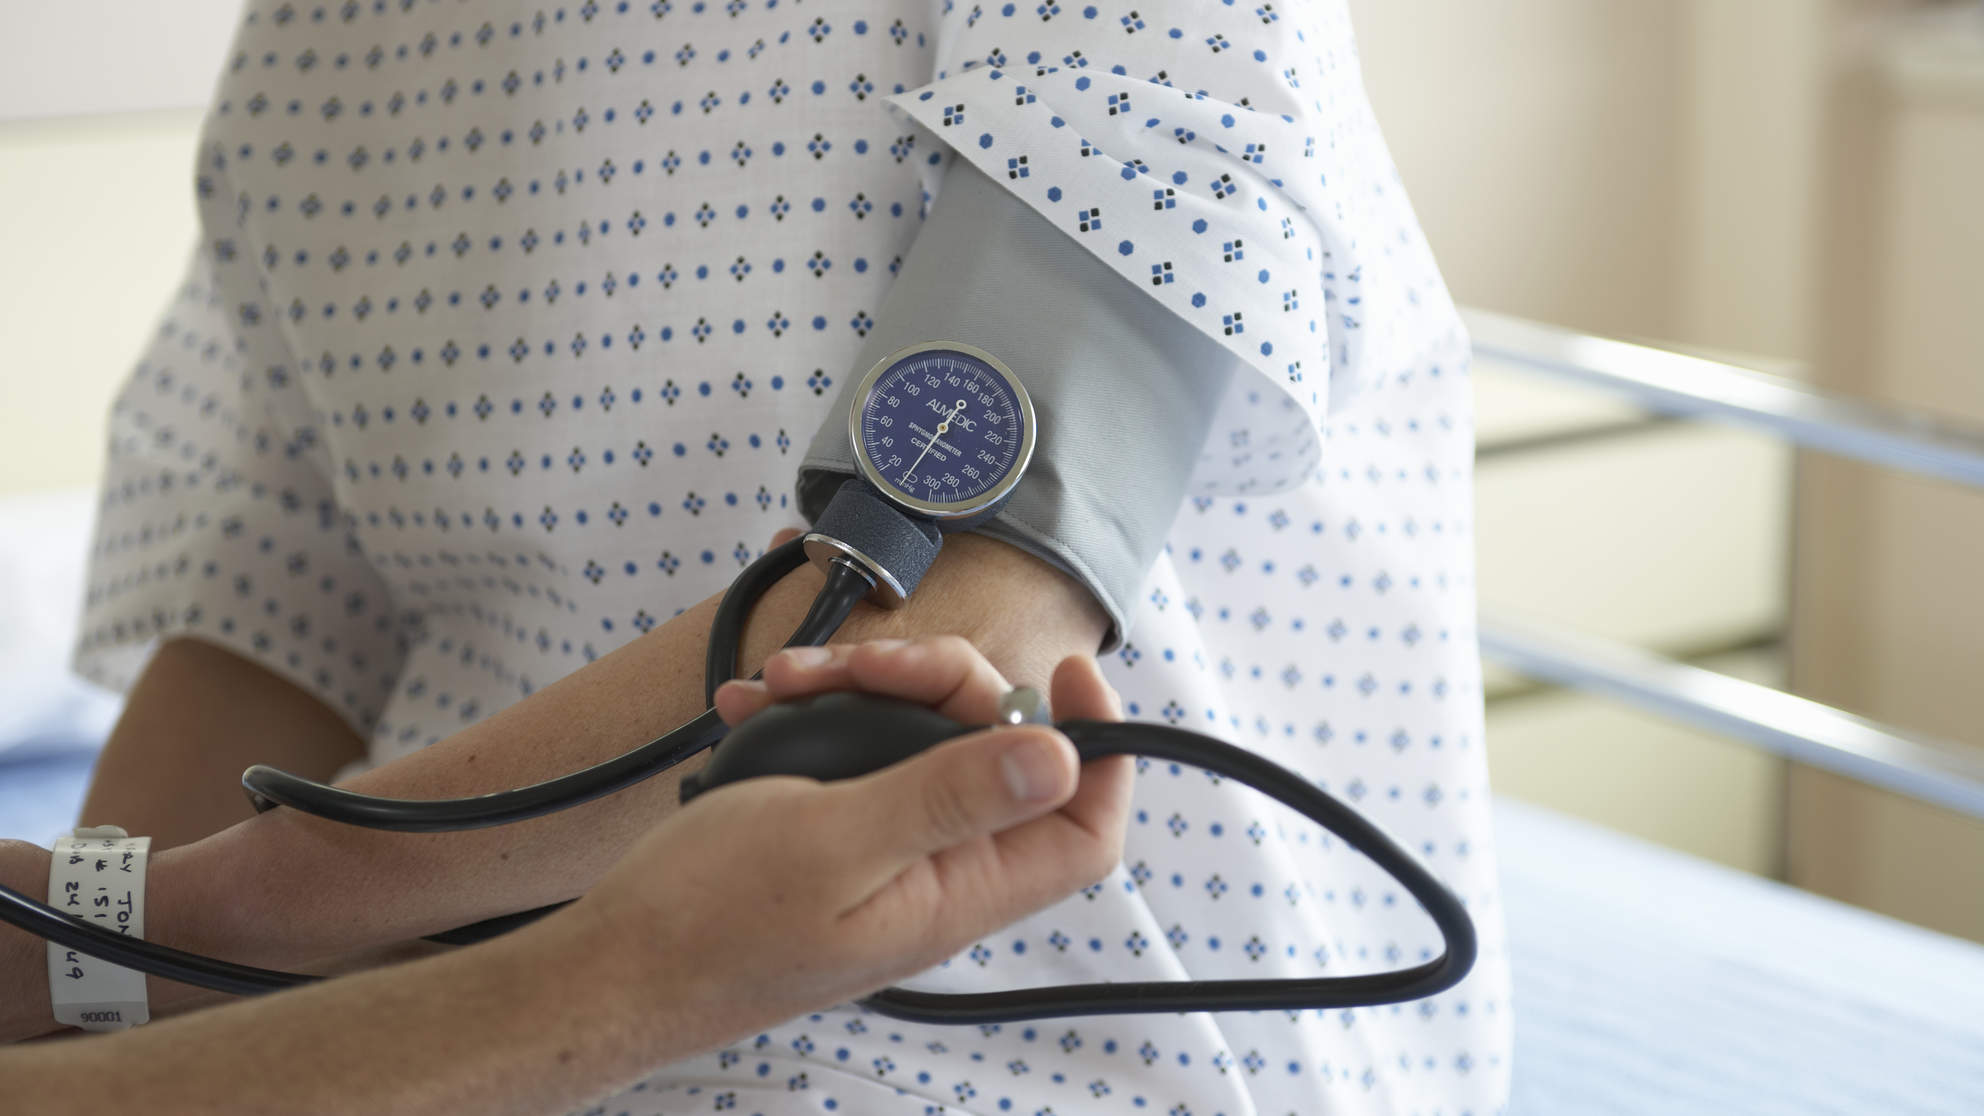 Almost Half of Americans Have High Blood Pressure Under New Guidelines